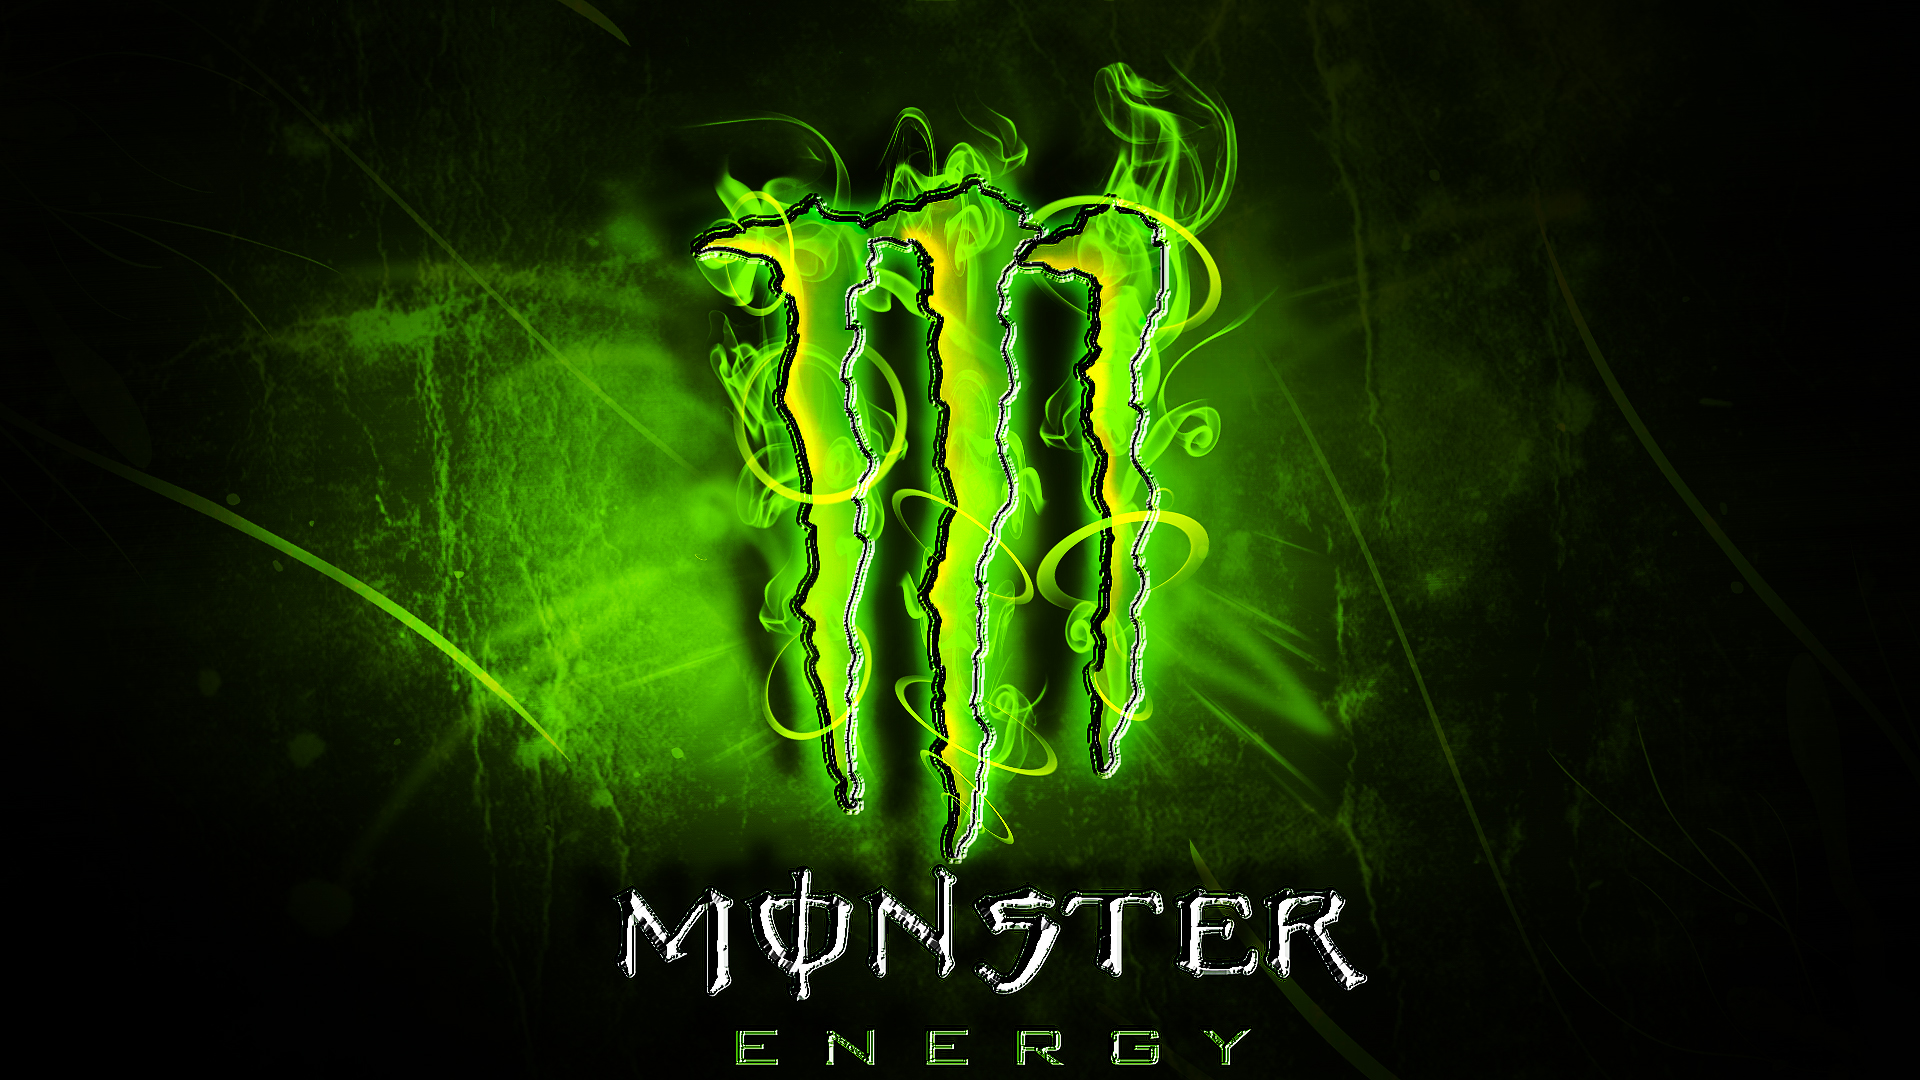 Monster Energy fond ecran hd 1920x1080